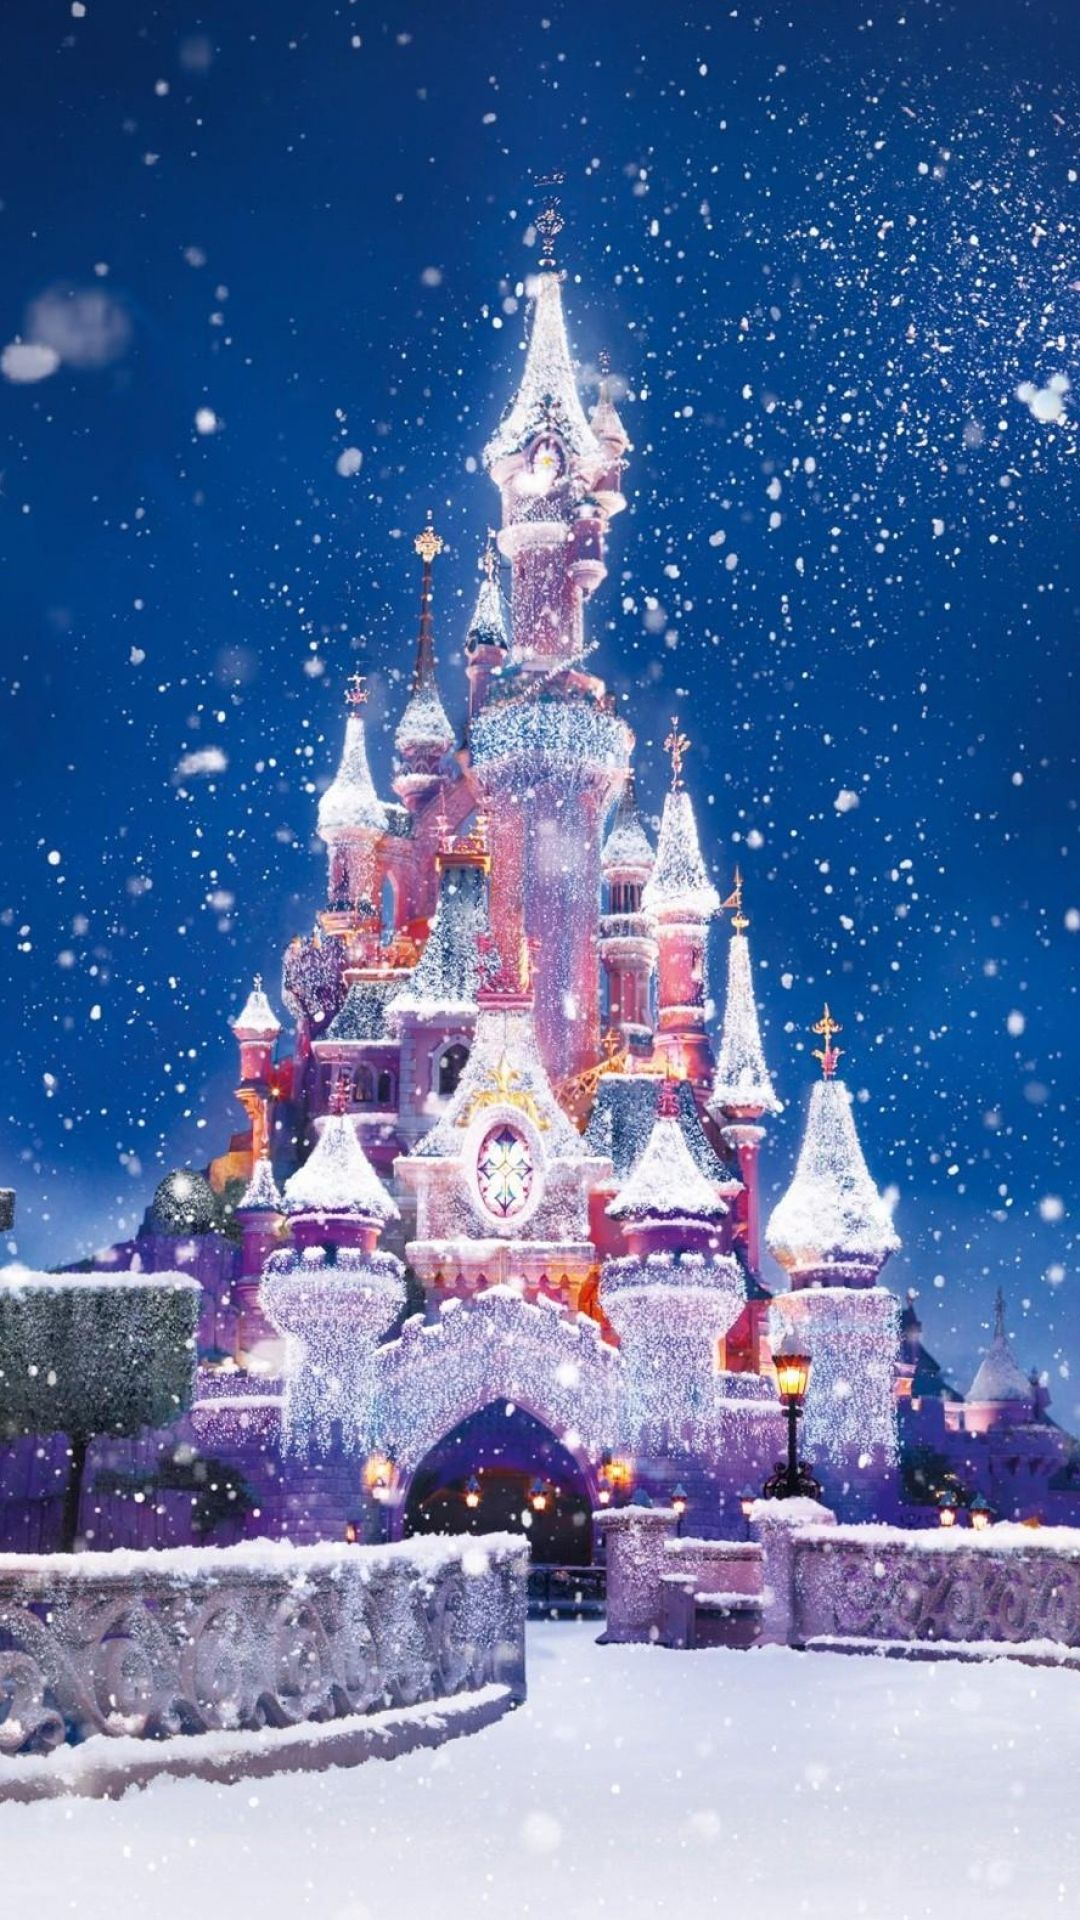 Holiday Disney Castle Christmas Lights Snow Android